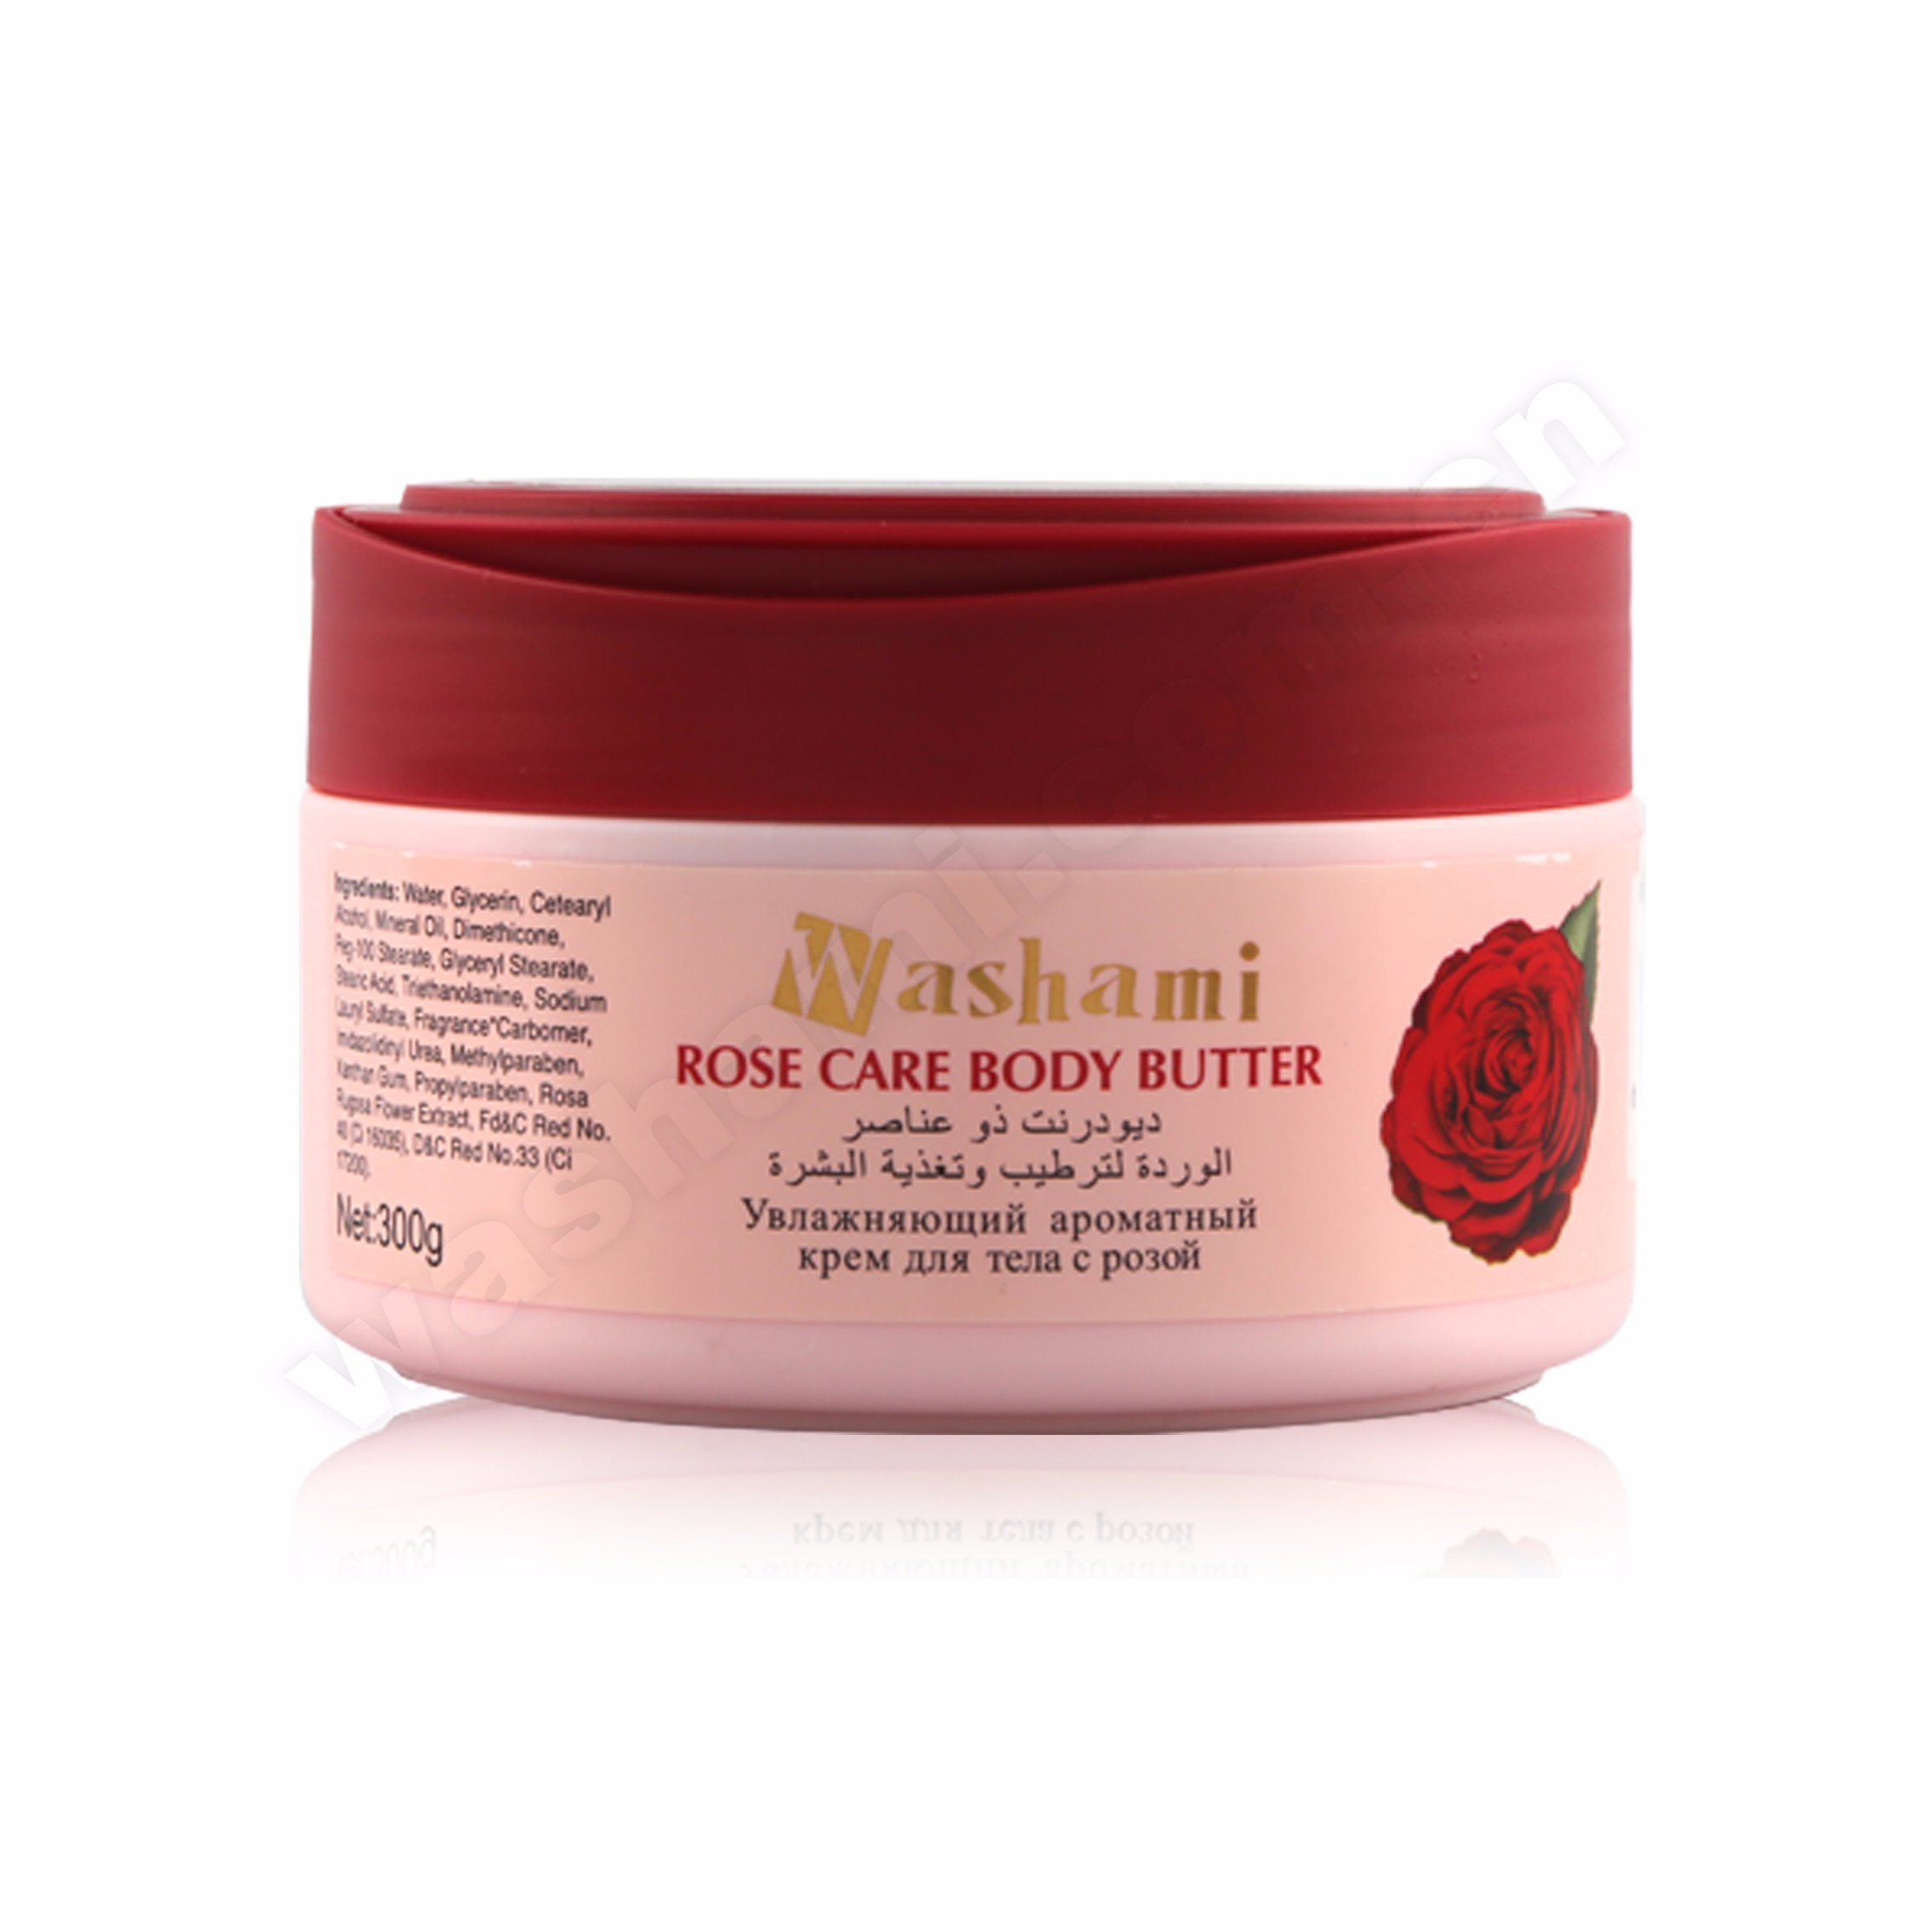 Washami Best Quality Natuer Essence Body Butter Cream